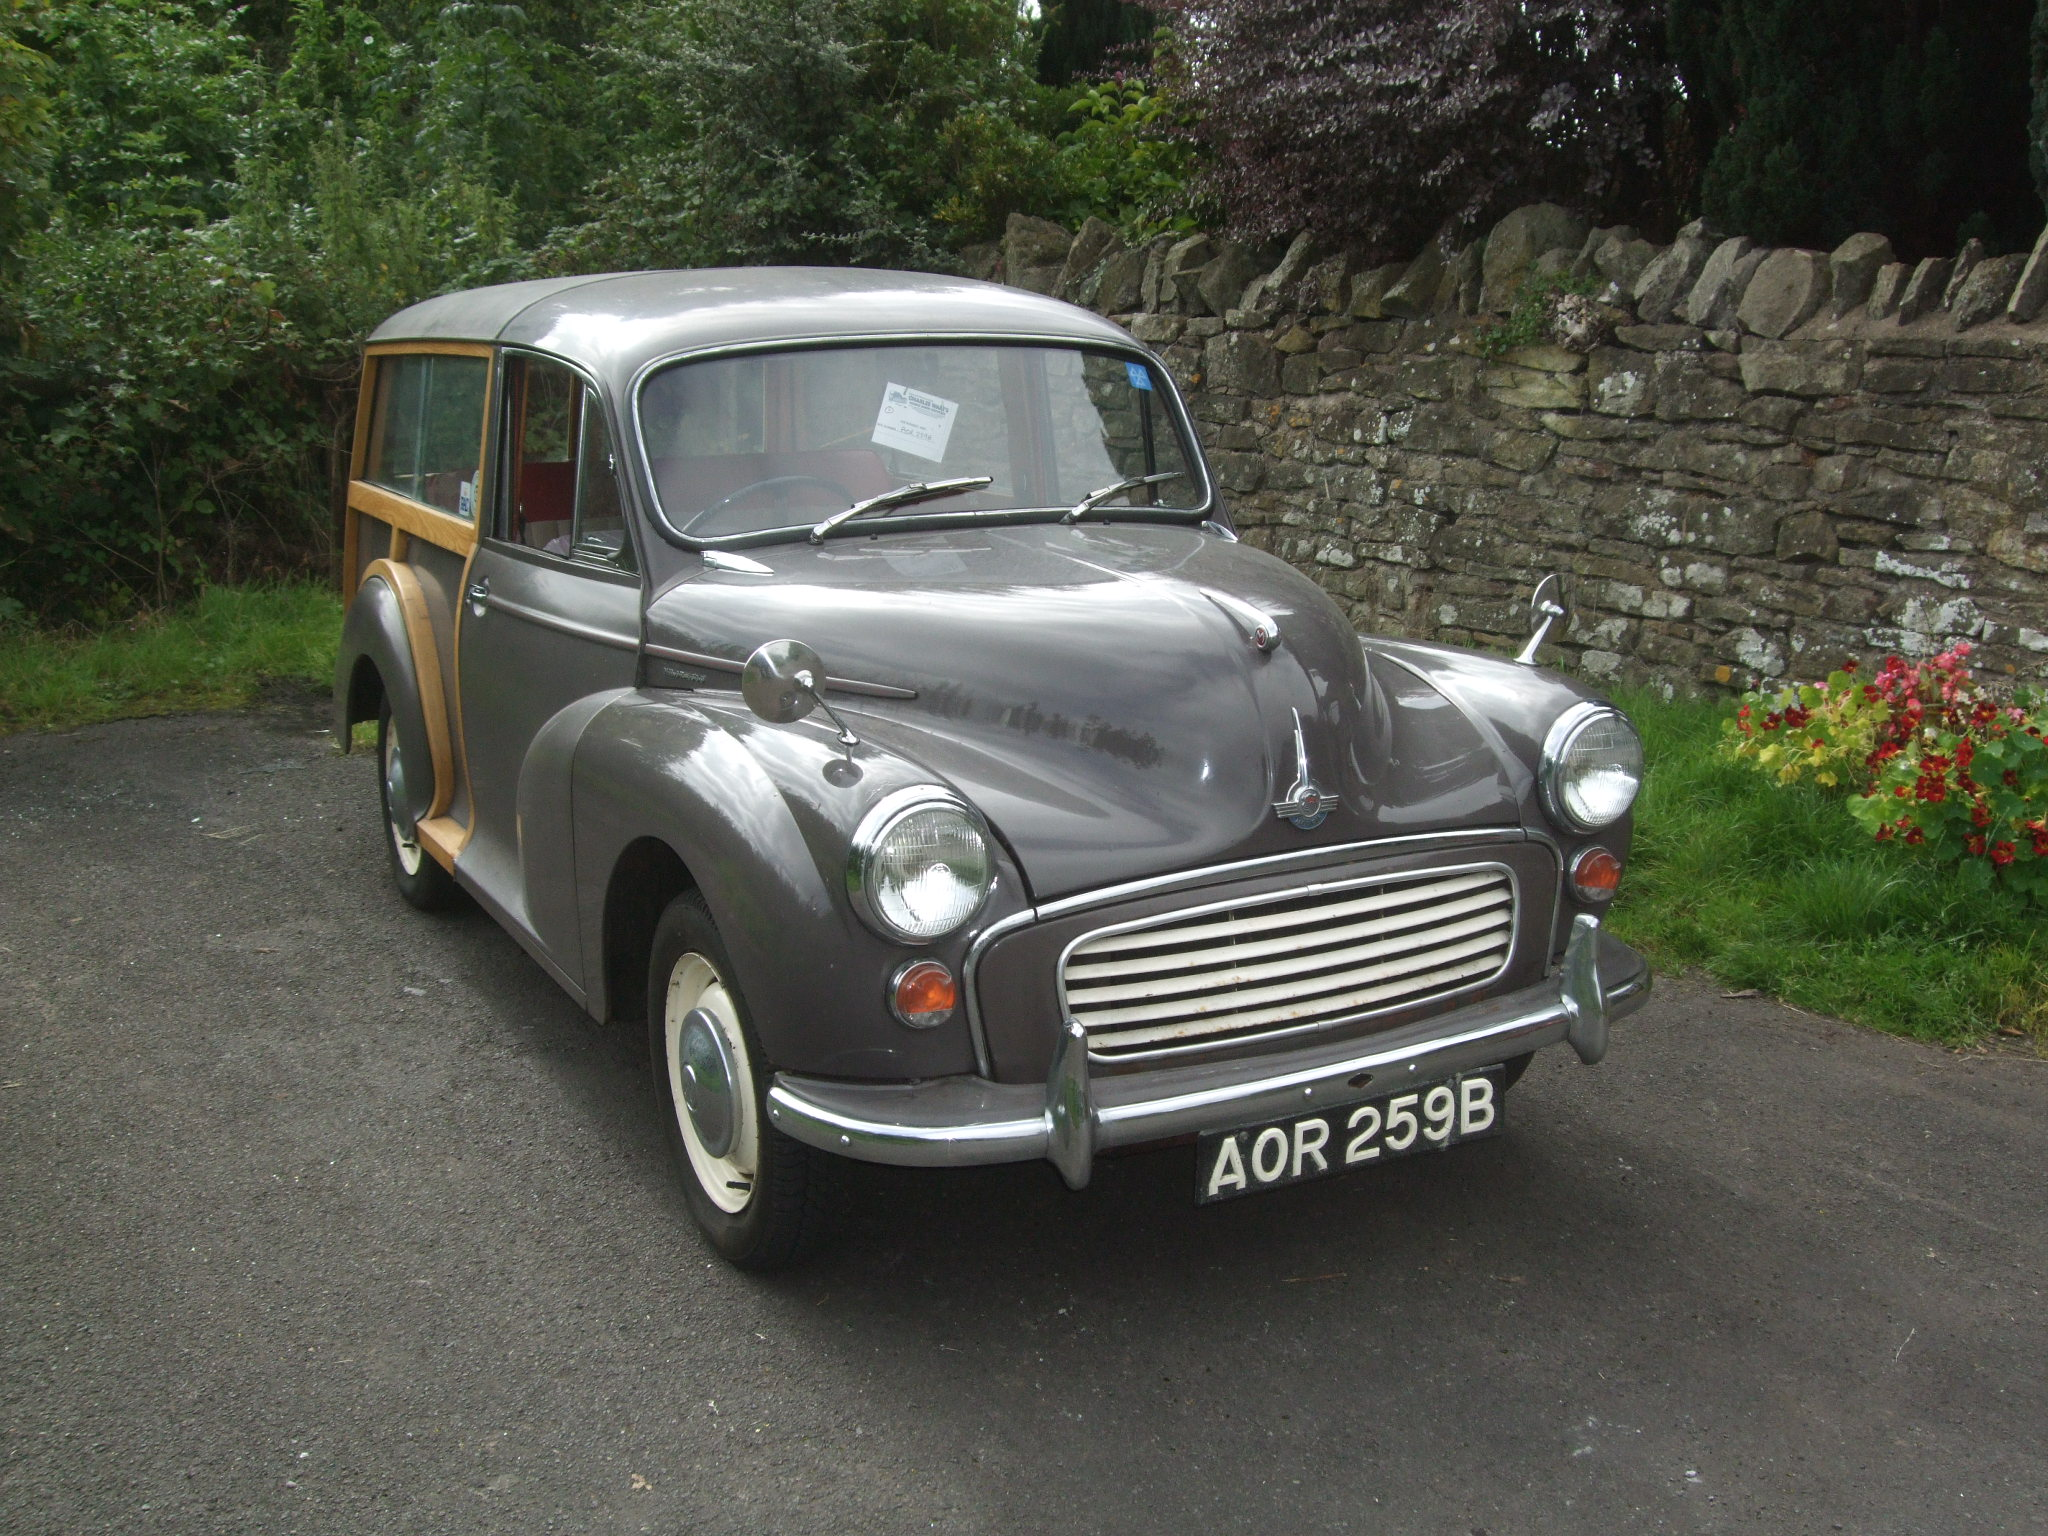 Morris minor traveller for sale - 1964 Rose Taupe Traveller With Red Duo Tone Interior Trim